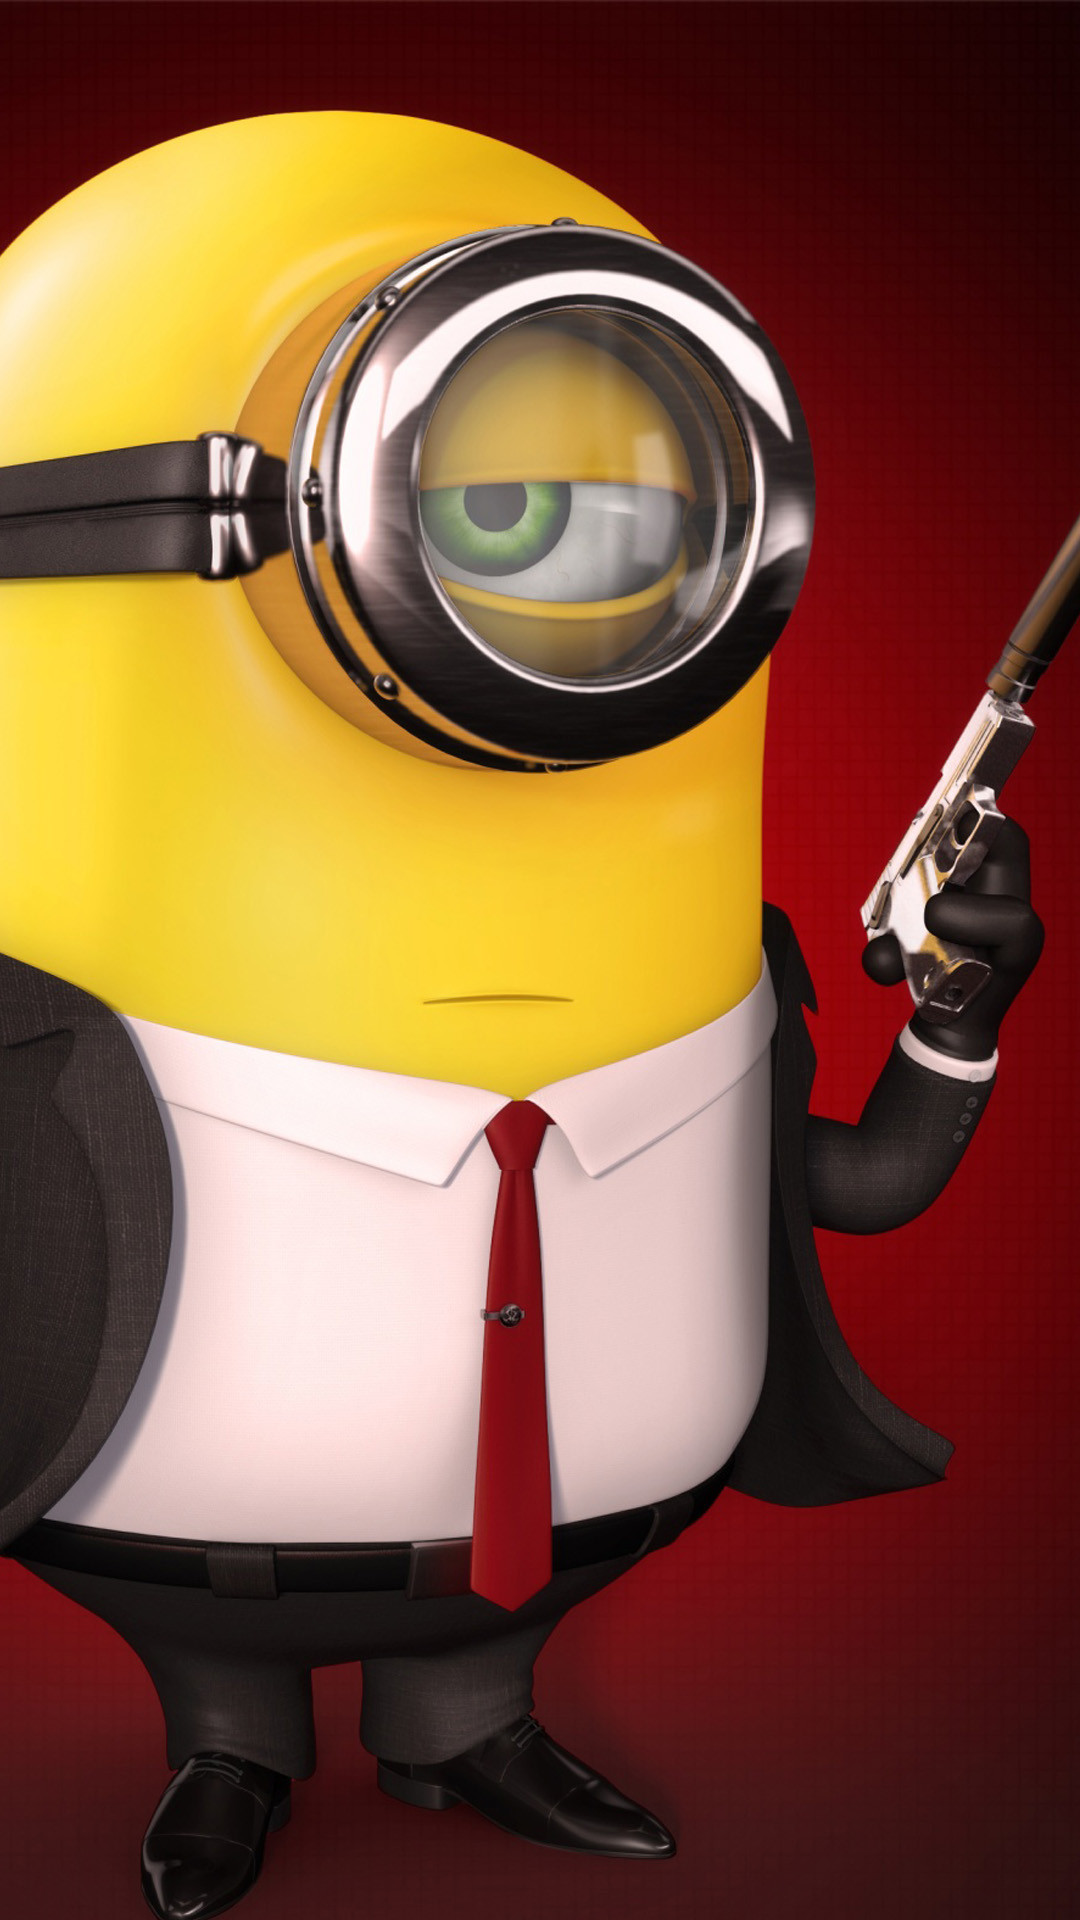 Live Minions Wallpapers Hd Wallpaper Collections 4kwallpaper Wiki